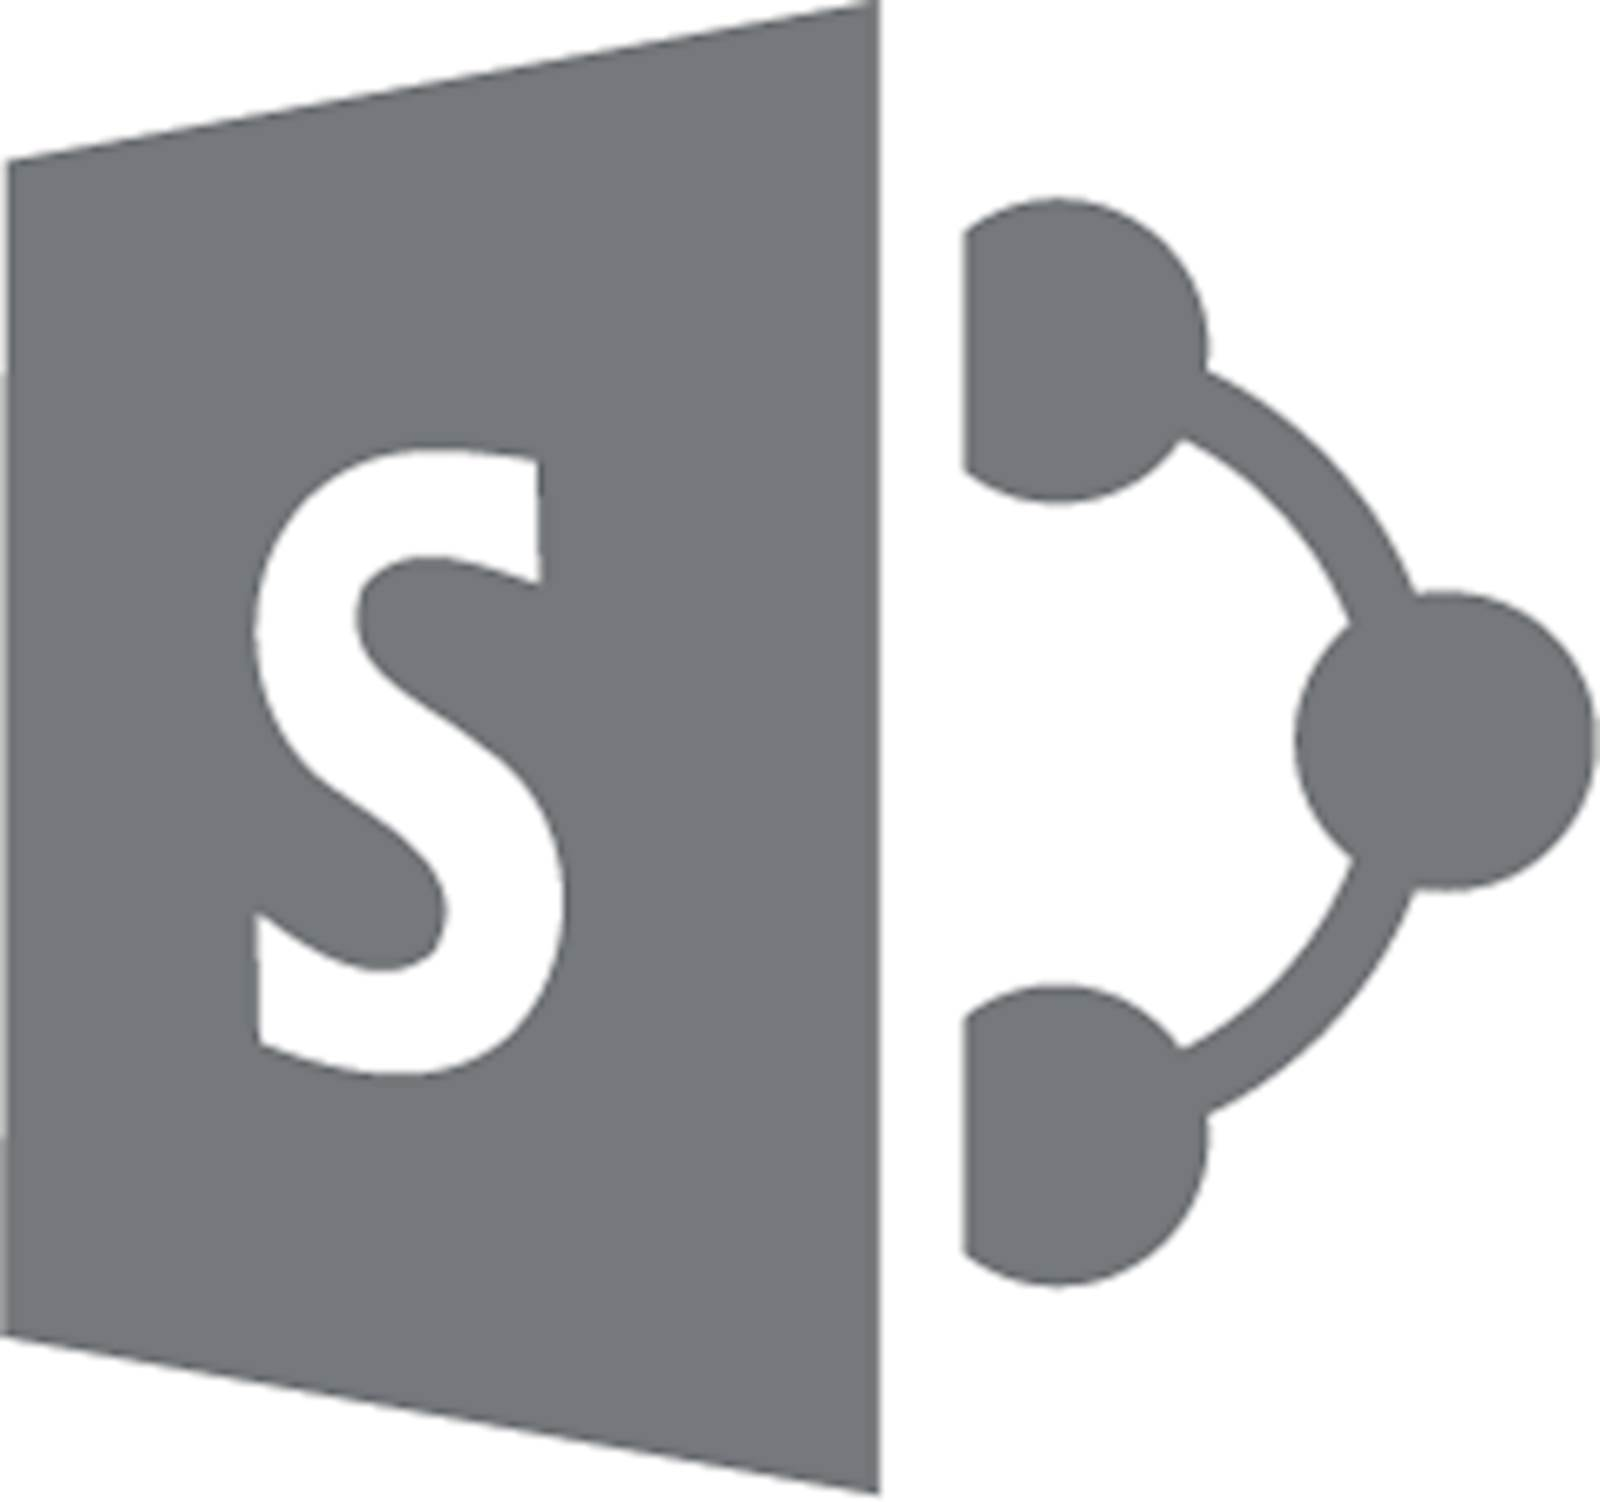 Drivve Image Scan to SharePoint Integration Graphic